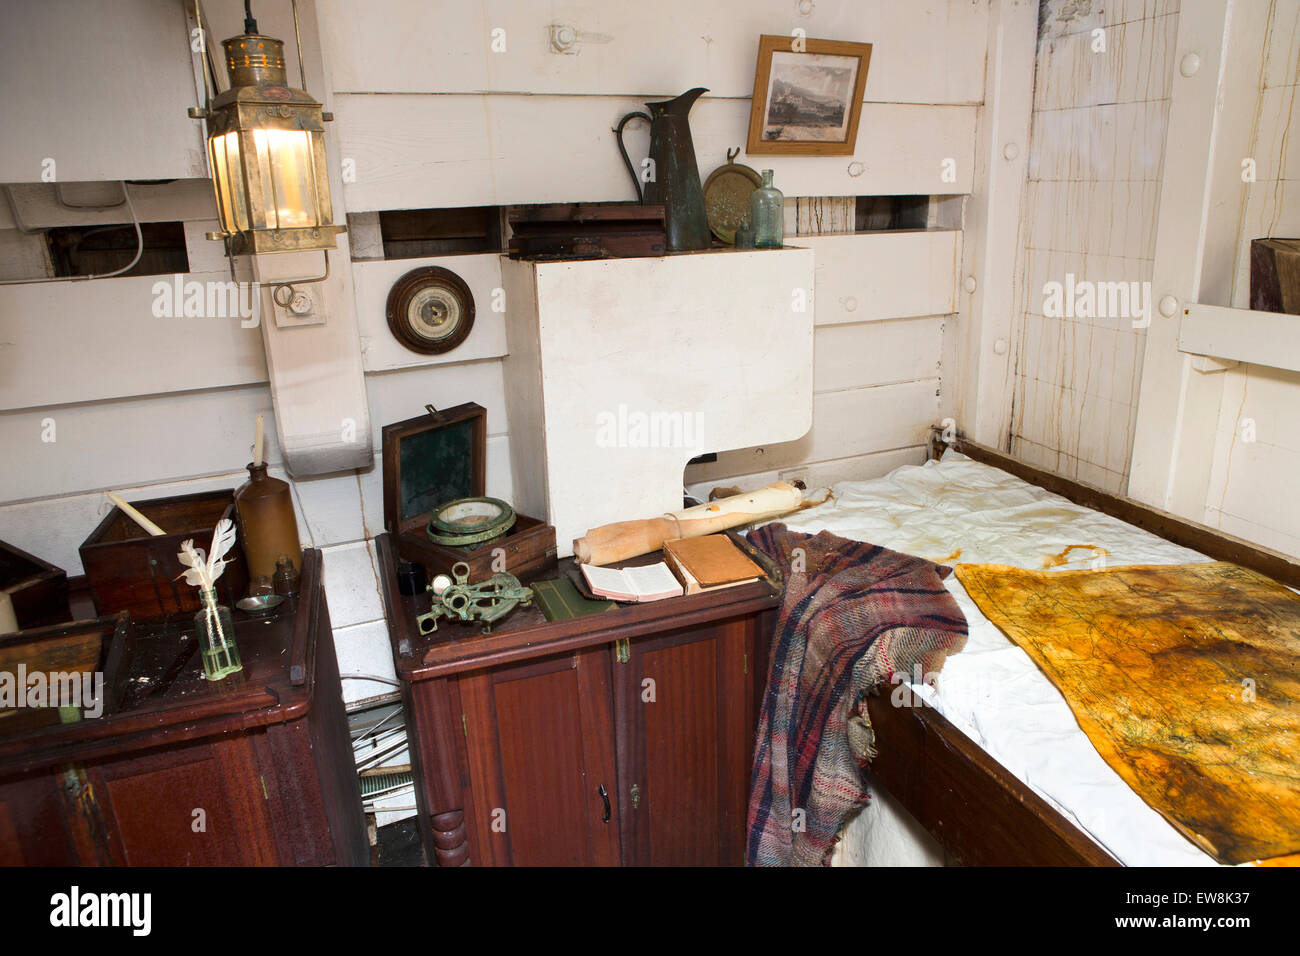 Ireland, Co Wexford, New Ross, Captains cabin inside 1845 emigrant ship Dunbrody - Stock Image